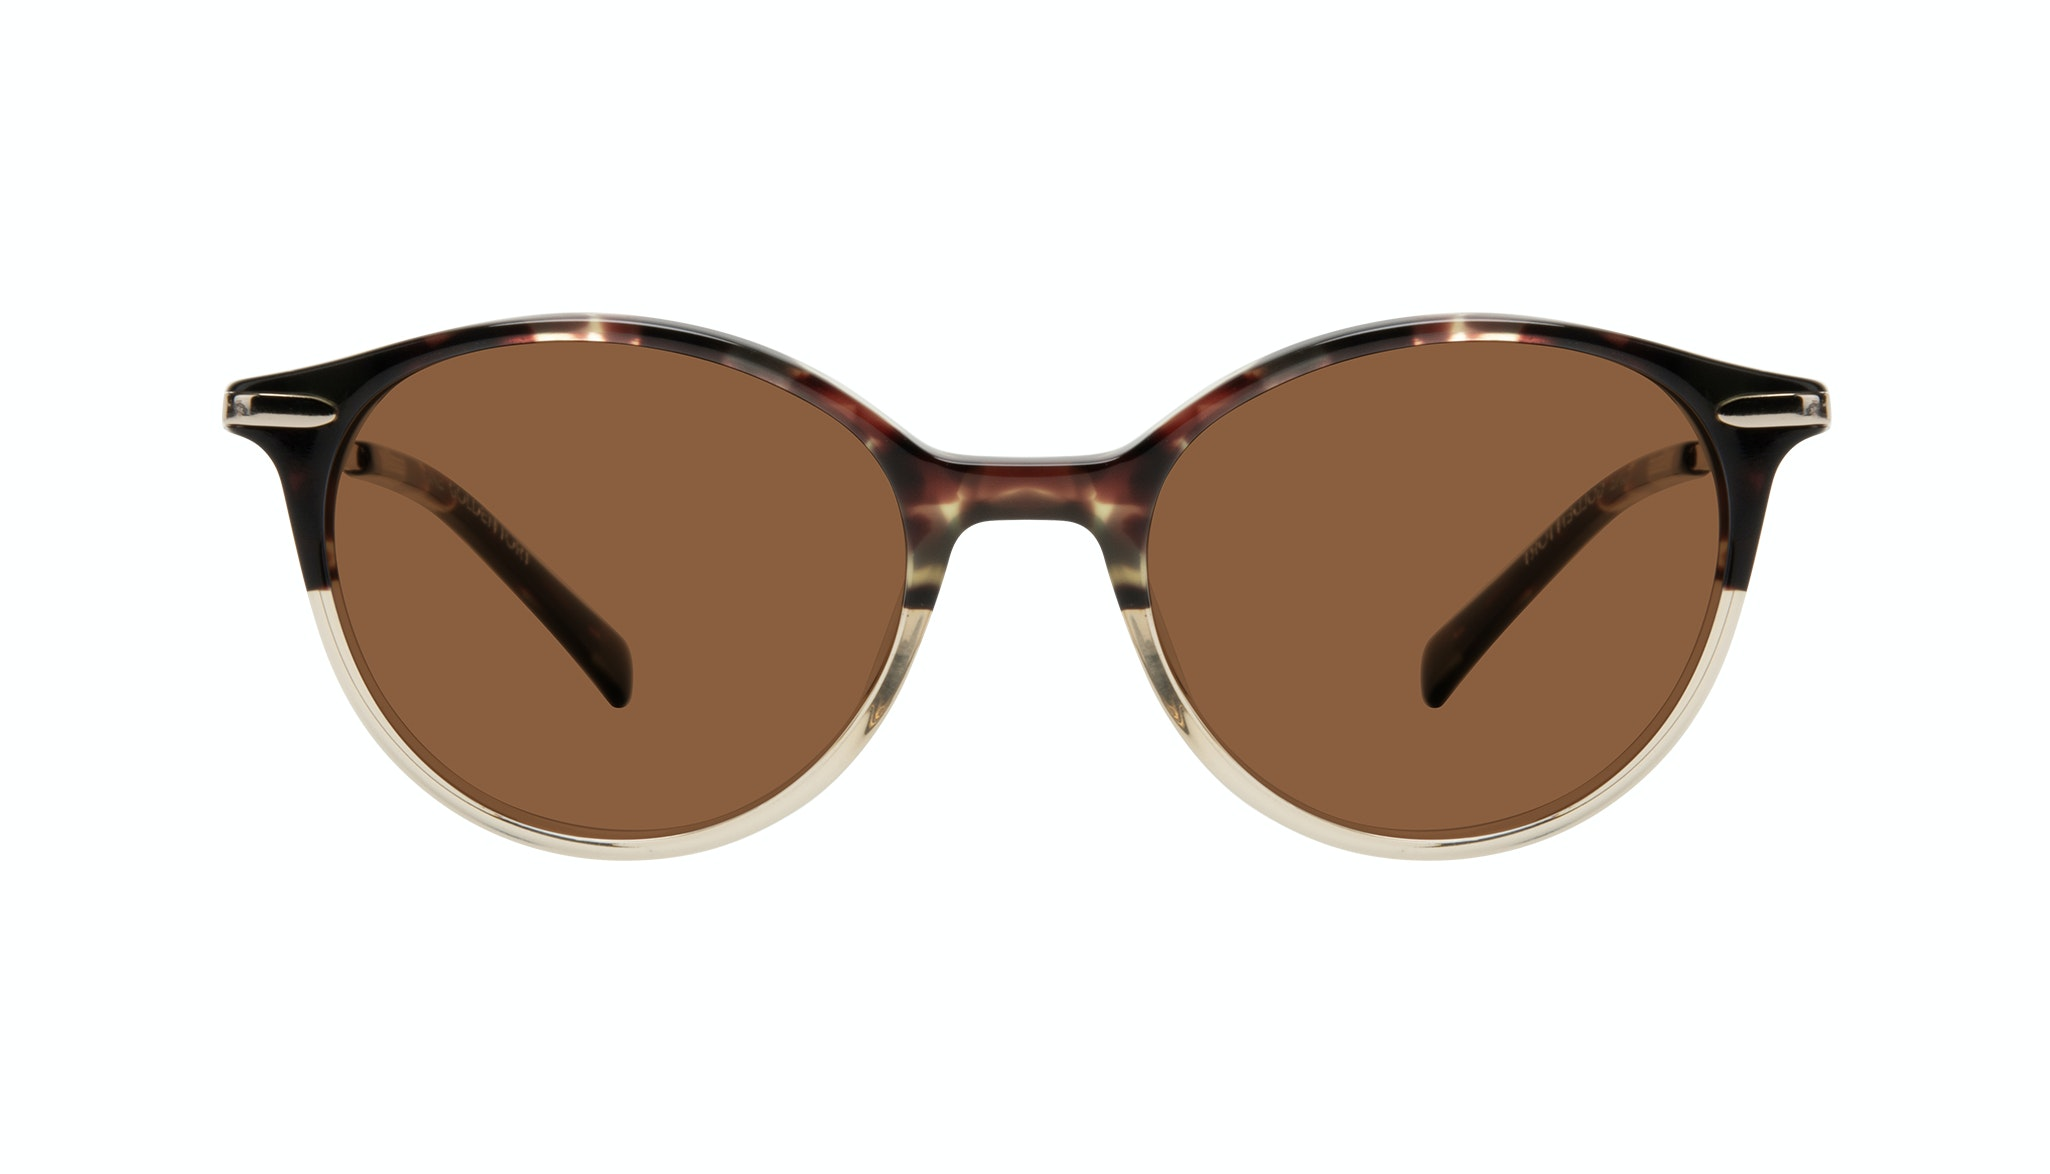 Affordable Fashion Glasses Round Sunglasses Women One Golden Tort